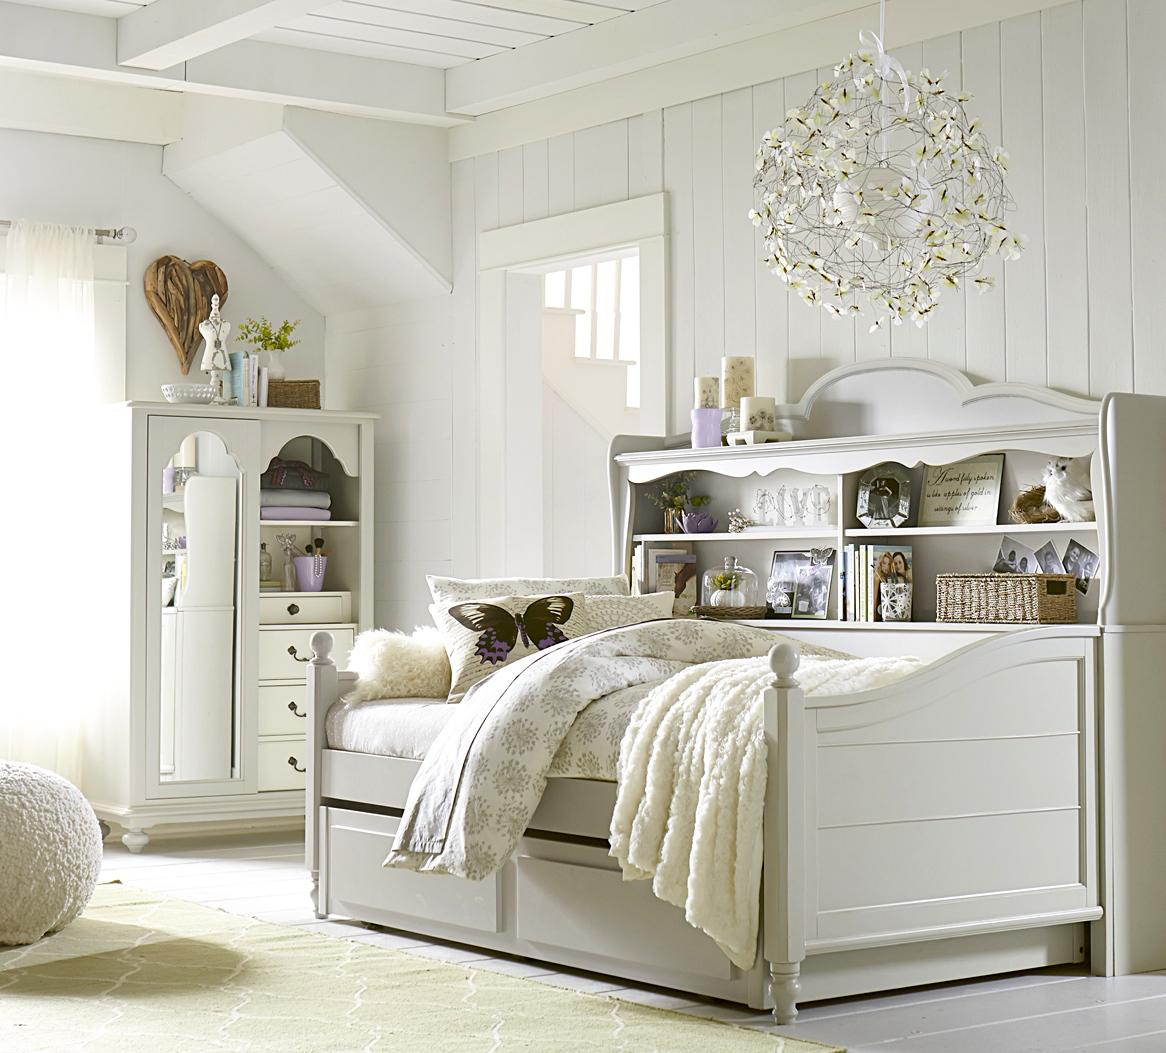 Legacy Bedroom Furniture Legacy Classic Kids Inspirations By Wendy Bellissimo Twin Westport